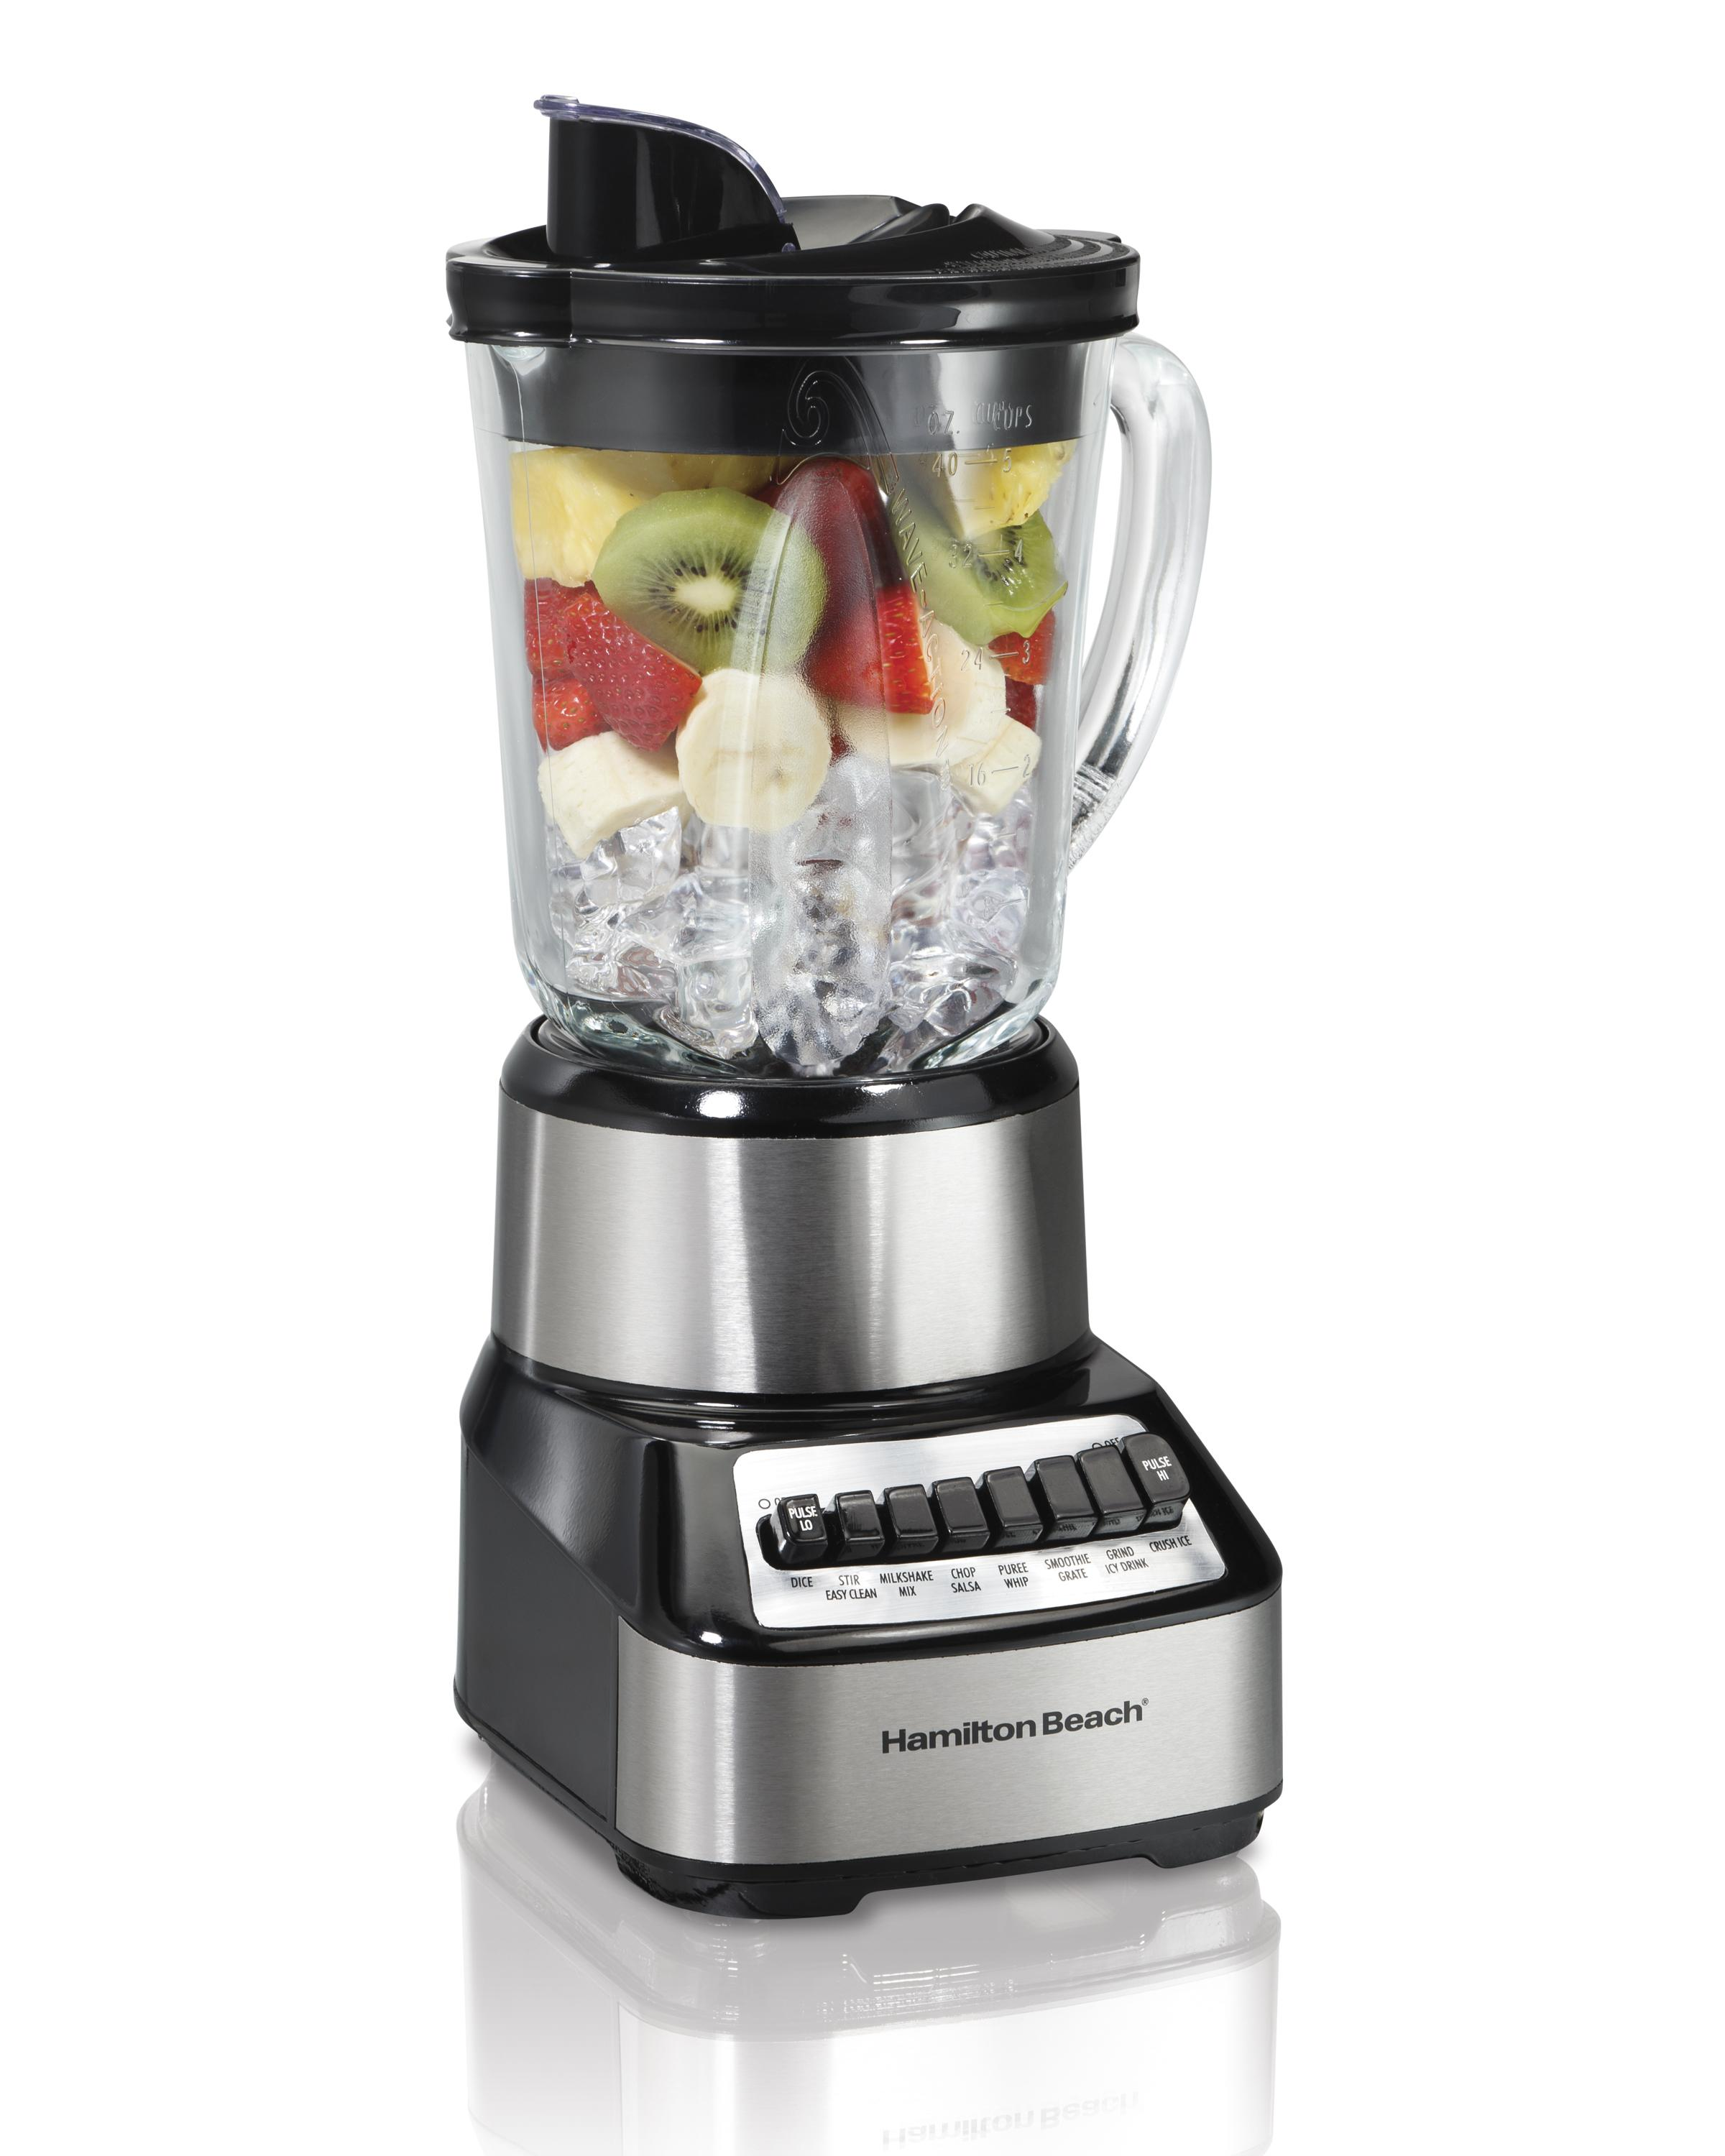 Amazon.com: Hamilton Beach Wave Crusher Multi-Function Blender with 14 Speeds & 40 oz Glass Jar ...